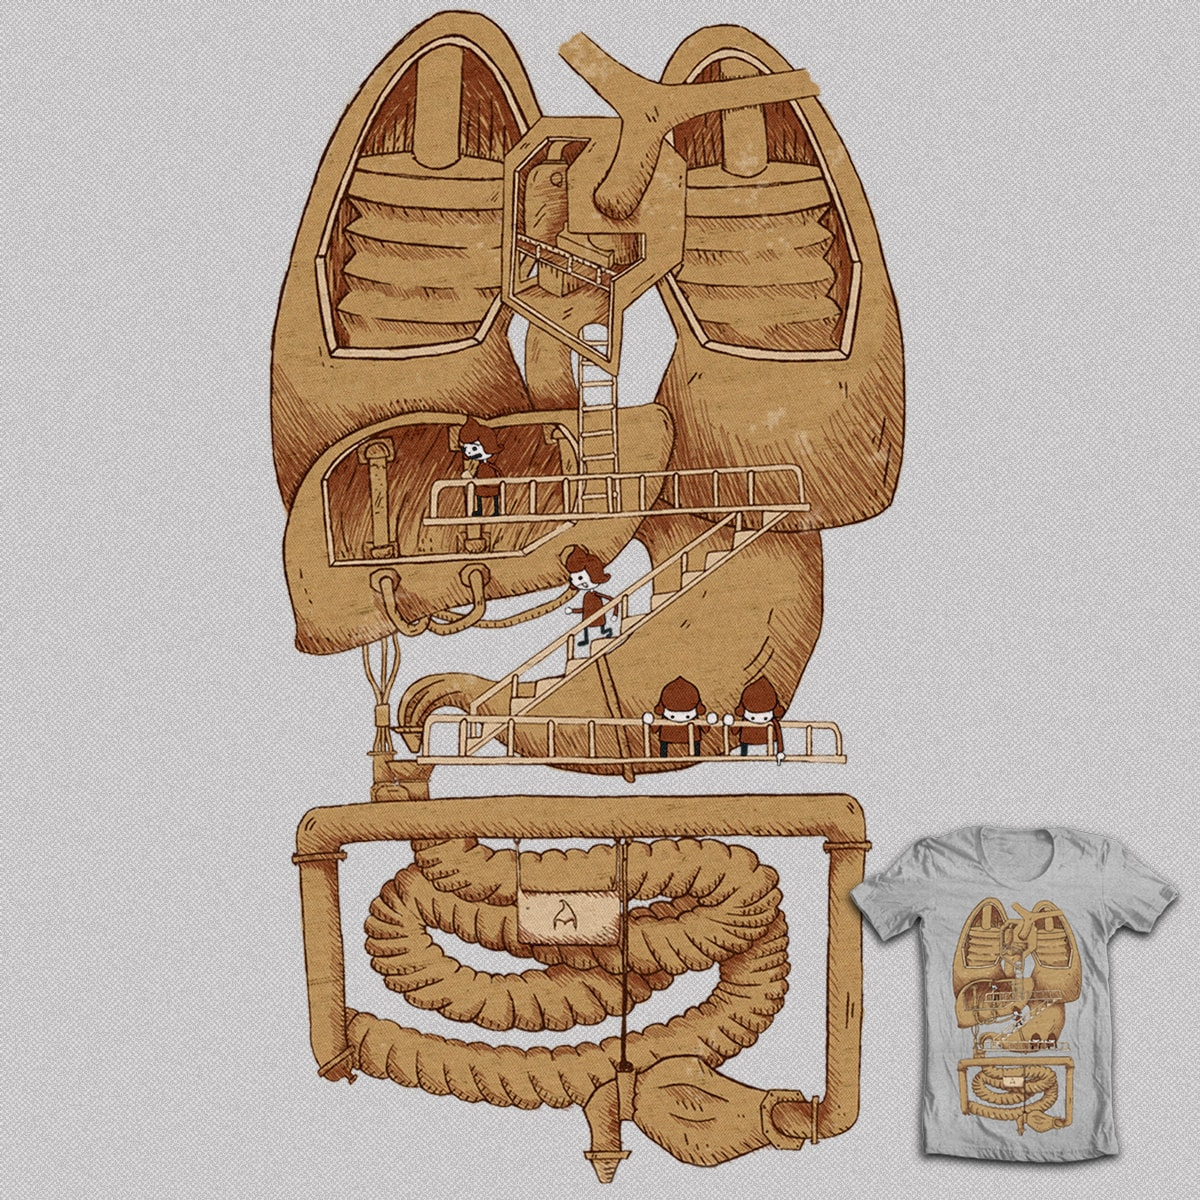 Chocolate Factory. by BouquinisteRip on Threadless